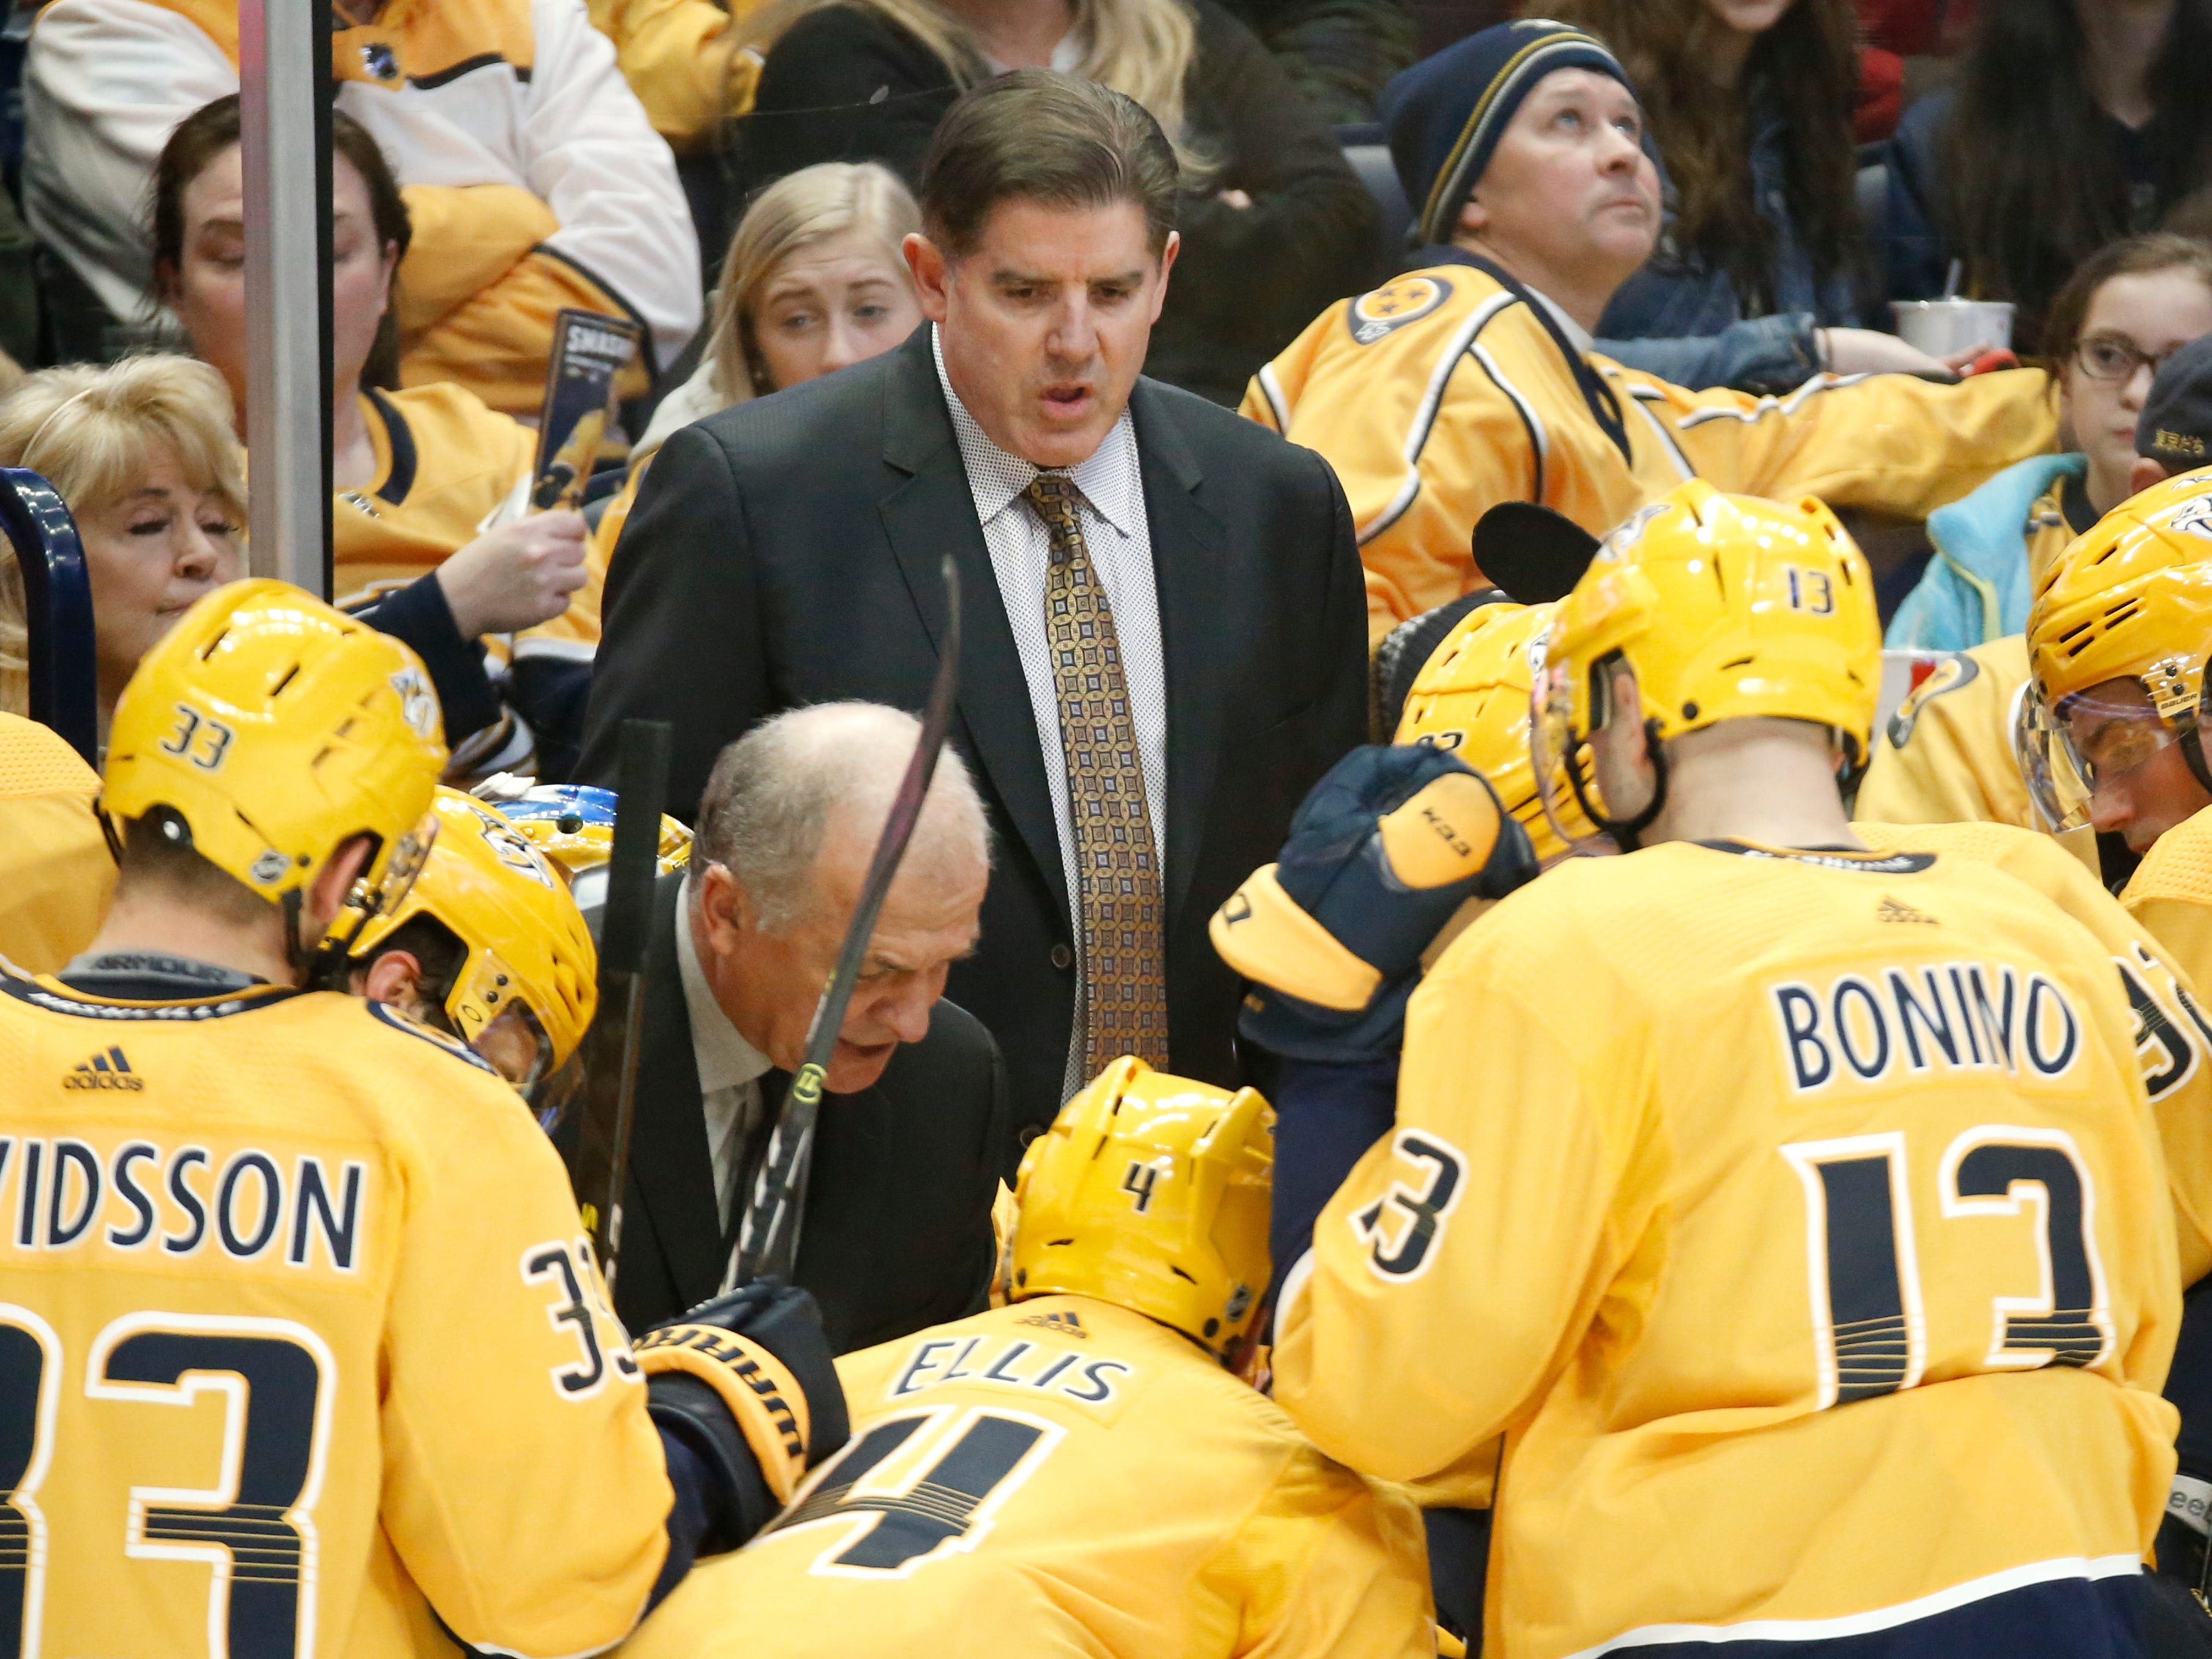 Nashville Predators coach Peter Laviolette, center, talks to players during a timeout in the third period of the team's NHL hockey game against the New York Rangers on Saturday, Dec. 29, 2018, in Nashville, Tenn. The Rangers won 4-3.